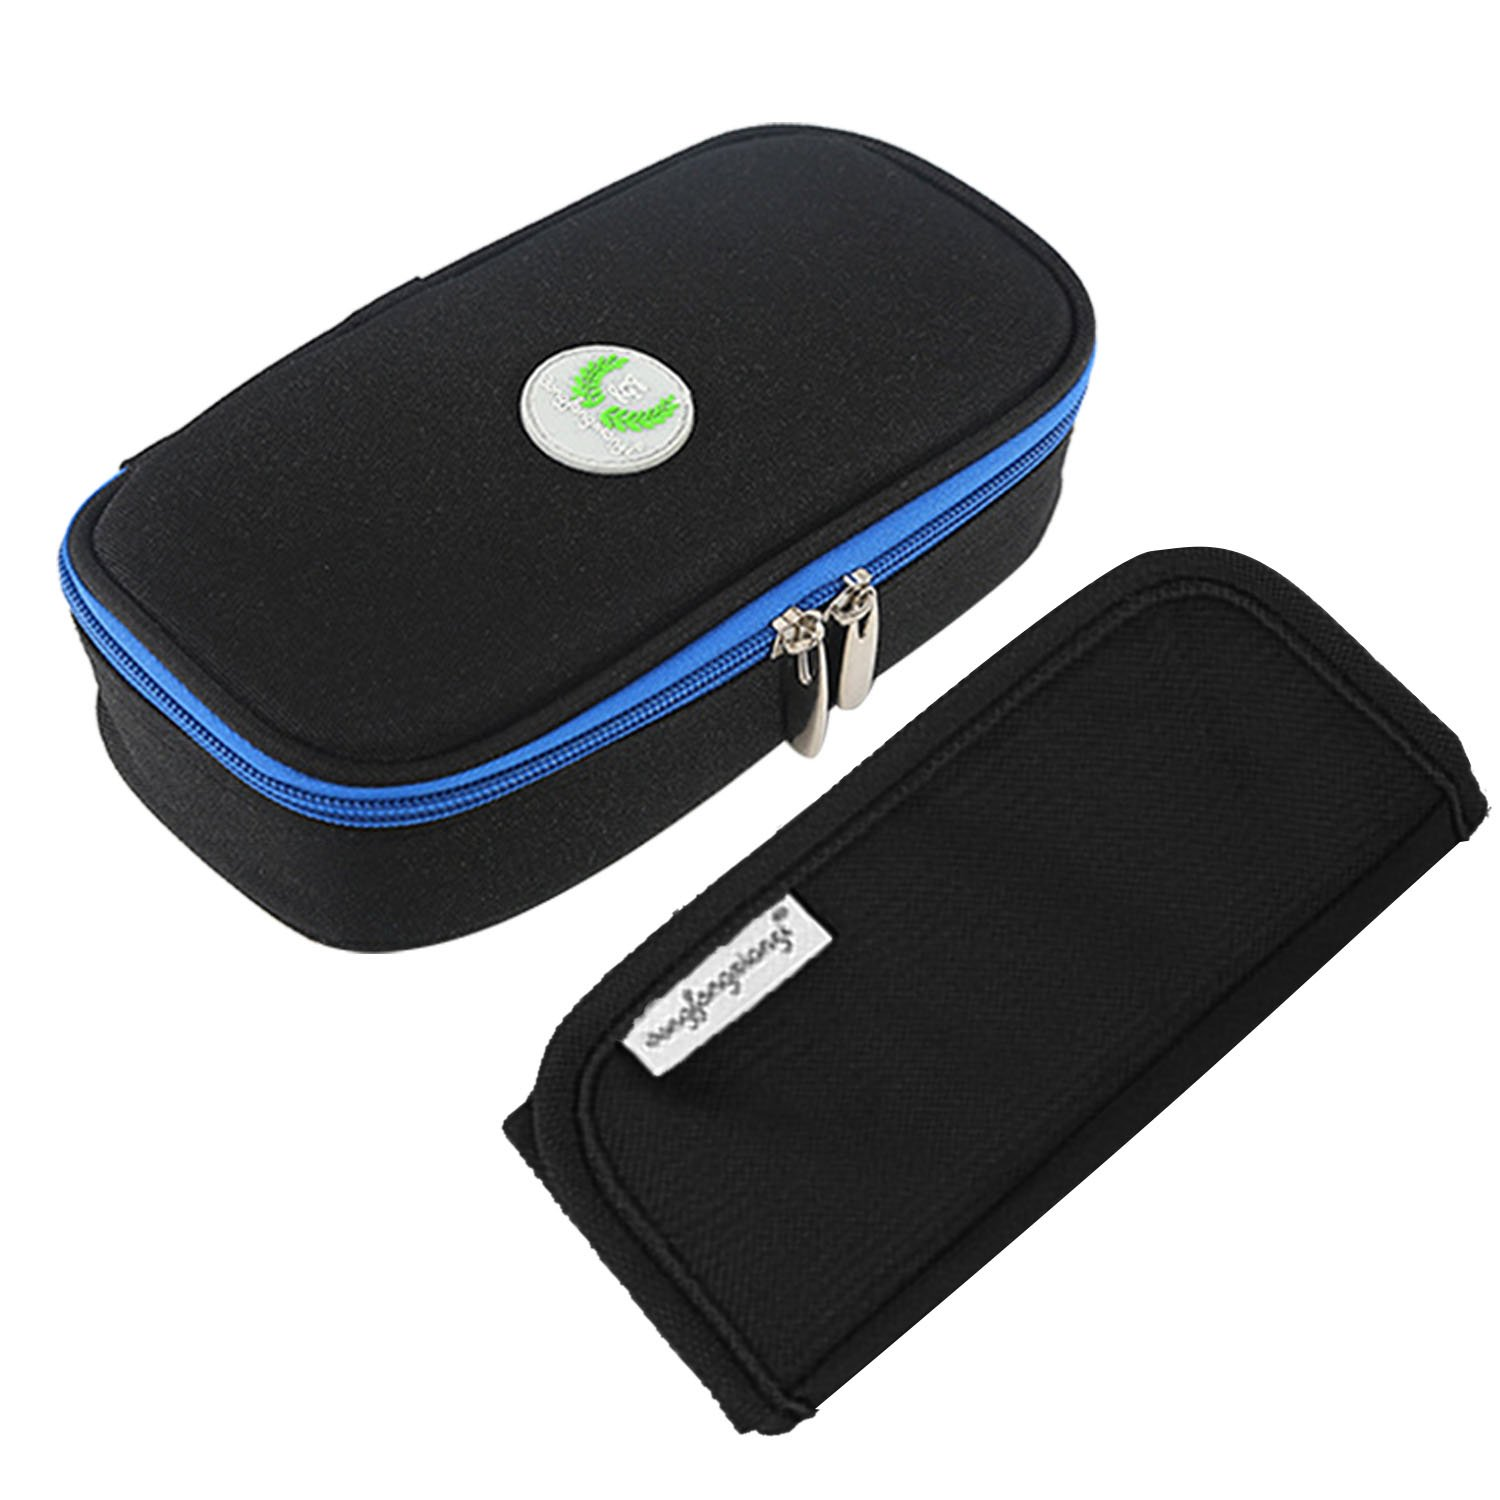 Portable Diabetic Organizer Cooler Bag Medical Travel Camping Case for Insulin Pen Syringes Storage Pouch Black